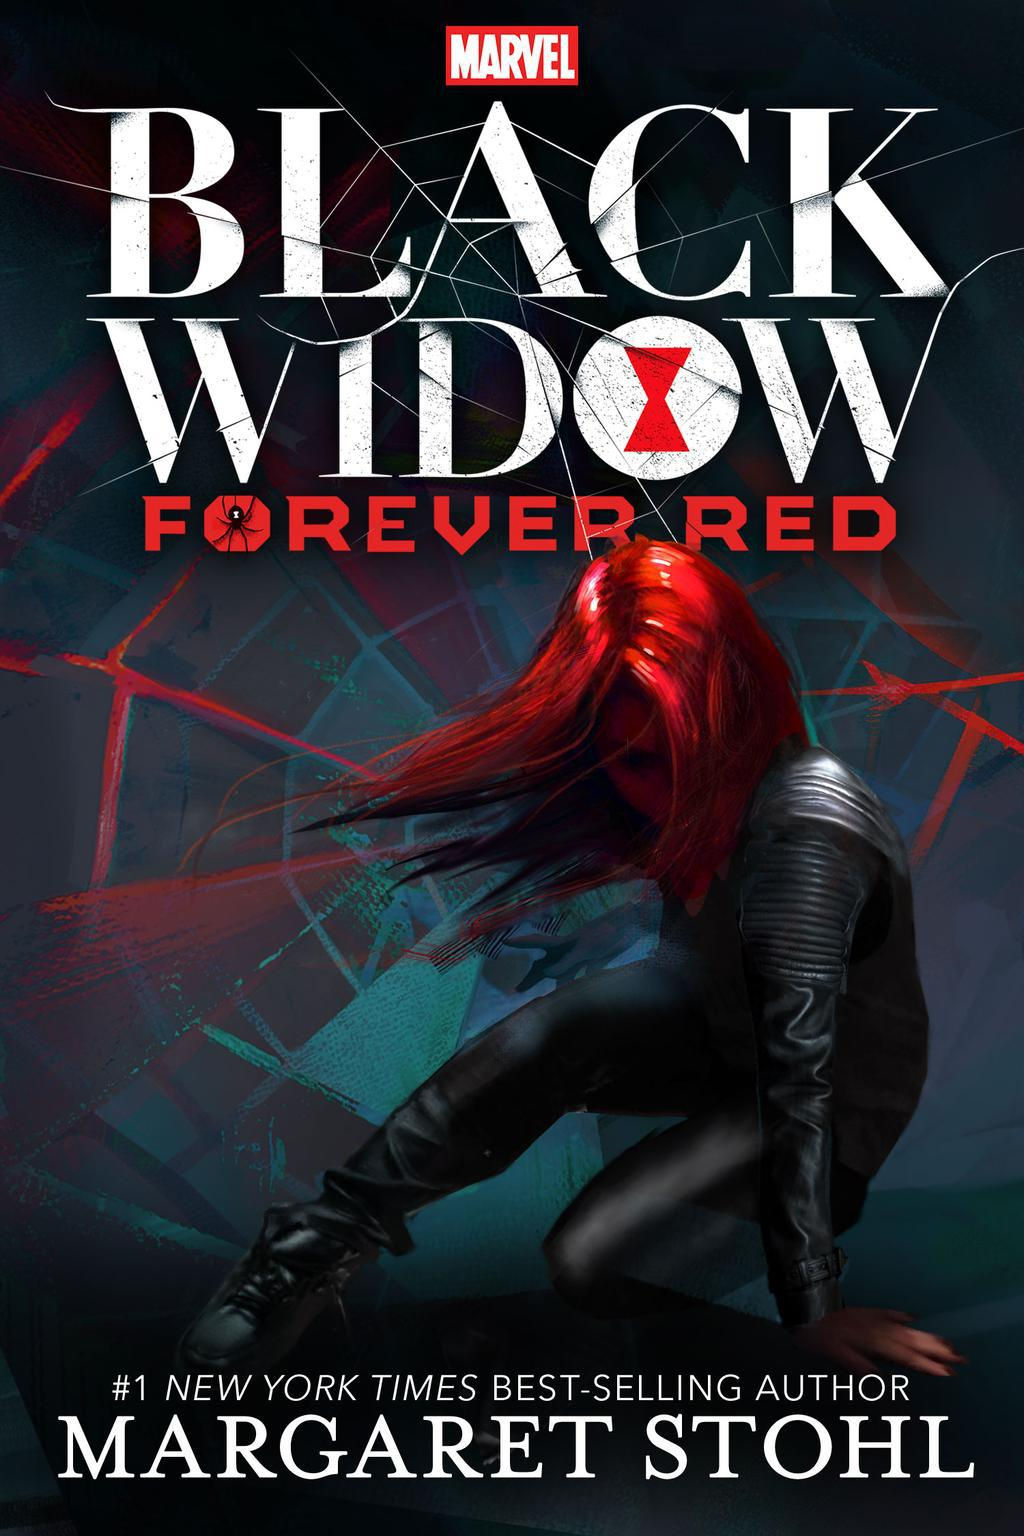 http://nothingbutn9erz.blogspot.co.at/2015/11/black-widow-forever-red-margaret-stohl-rezension.html